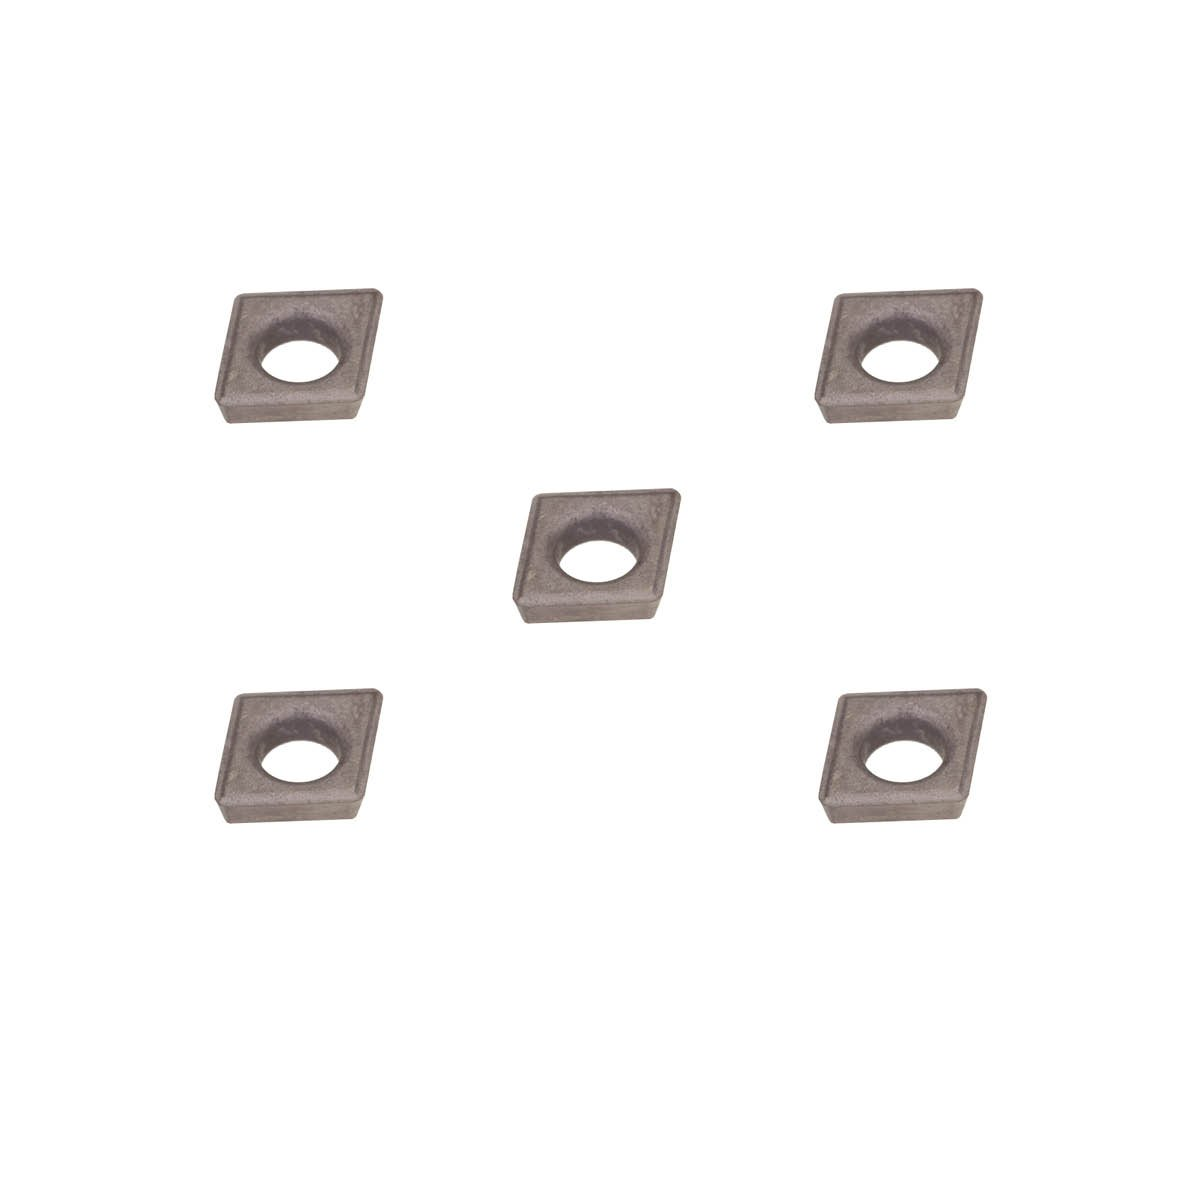 0.015 Radius Uncoated carbide boring insert for non-ferrous alloys plastic without interrupted cuts. aluminium Molded Chipbreaker THINBIT 5 Pack MBAIW15D5U MBA Series